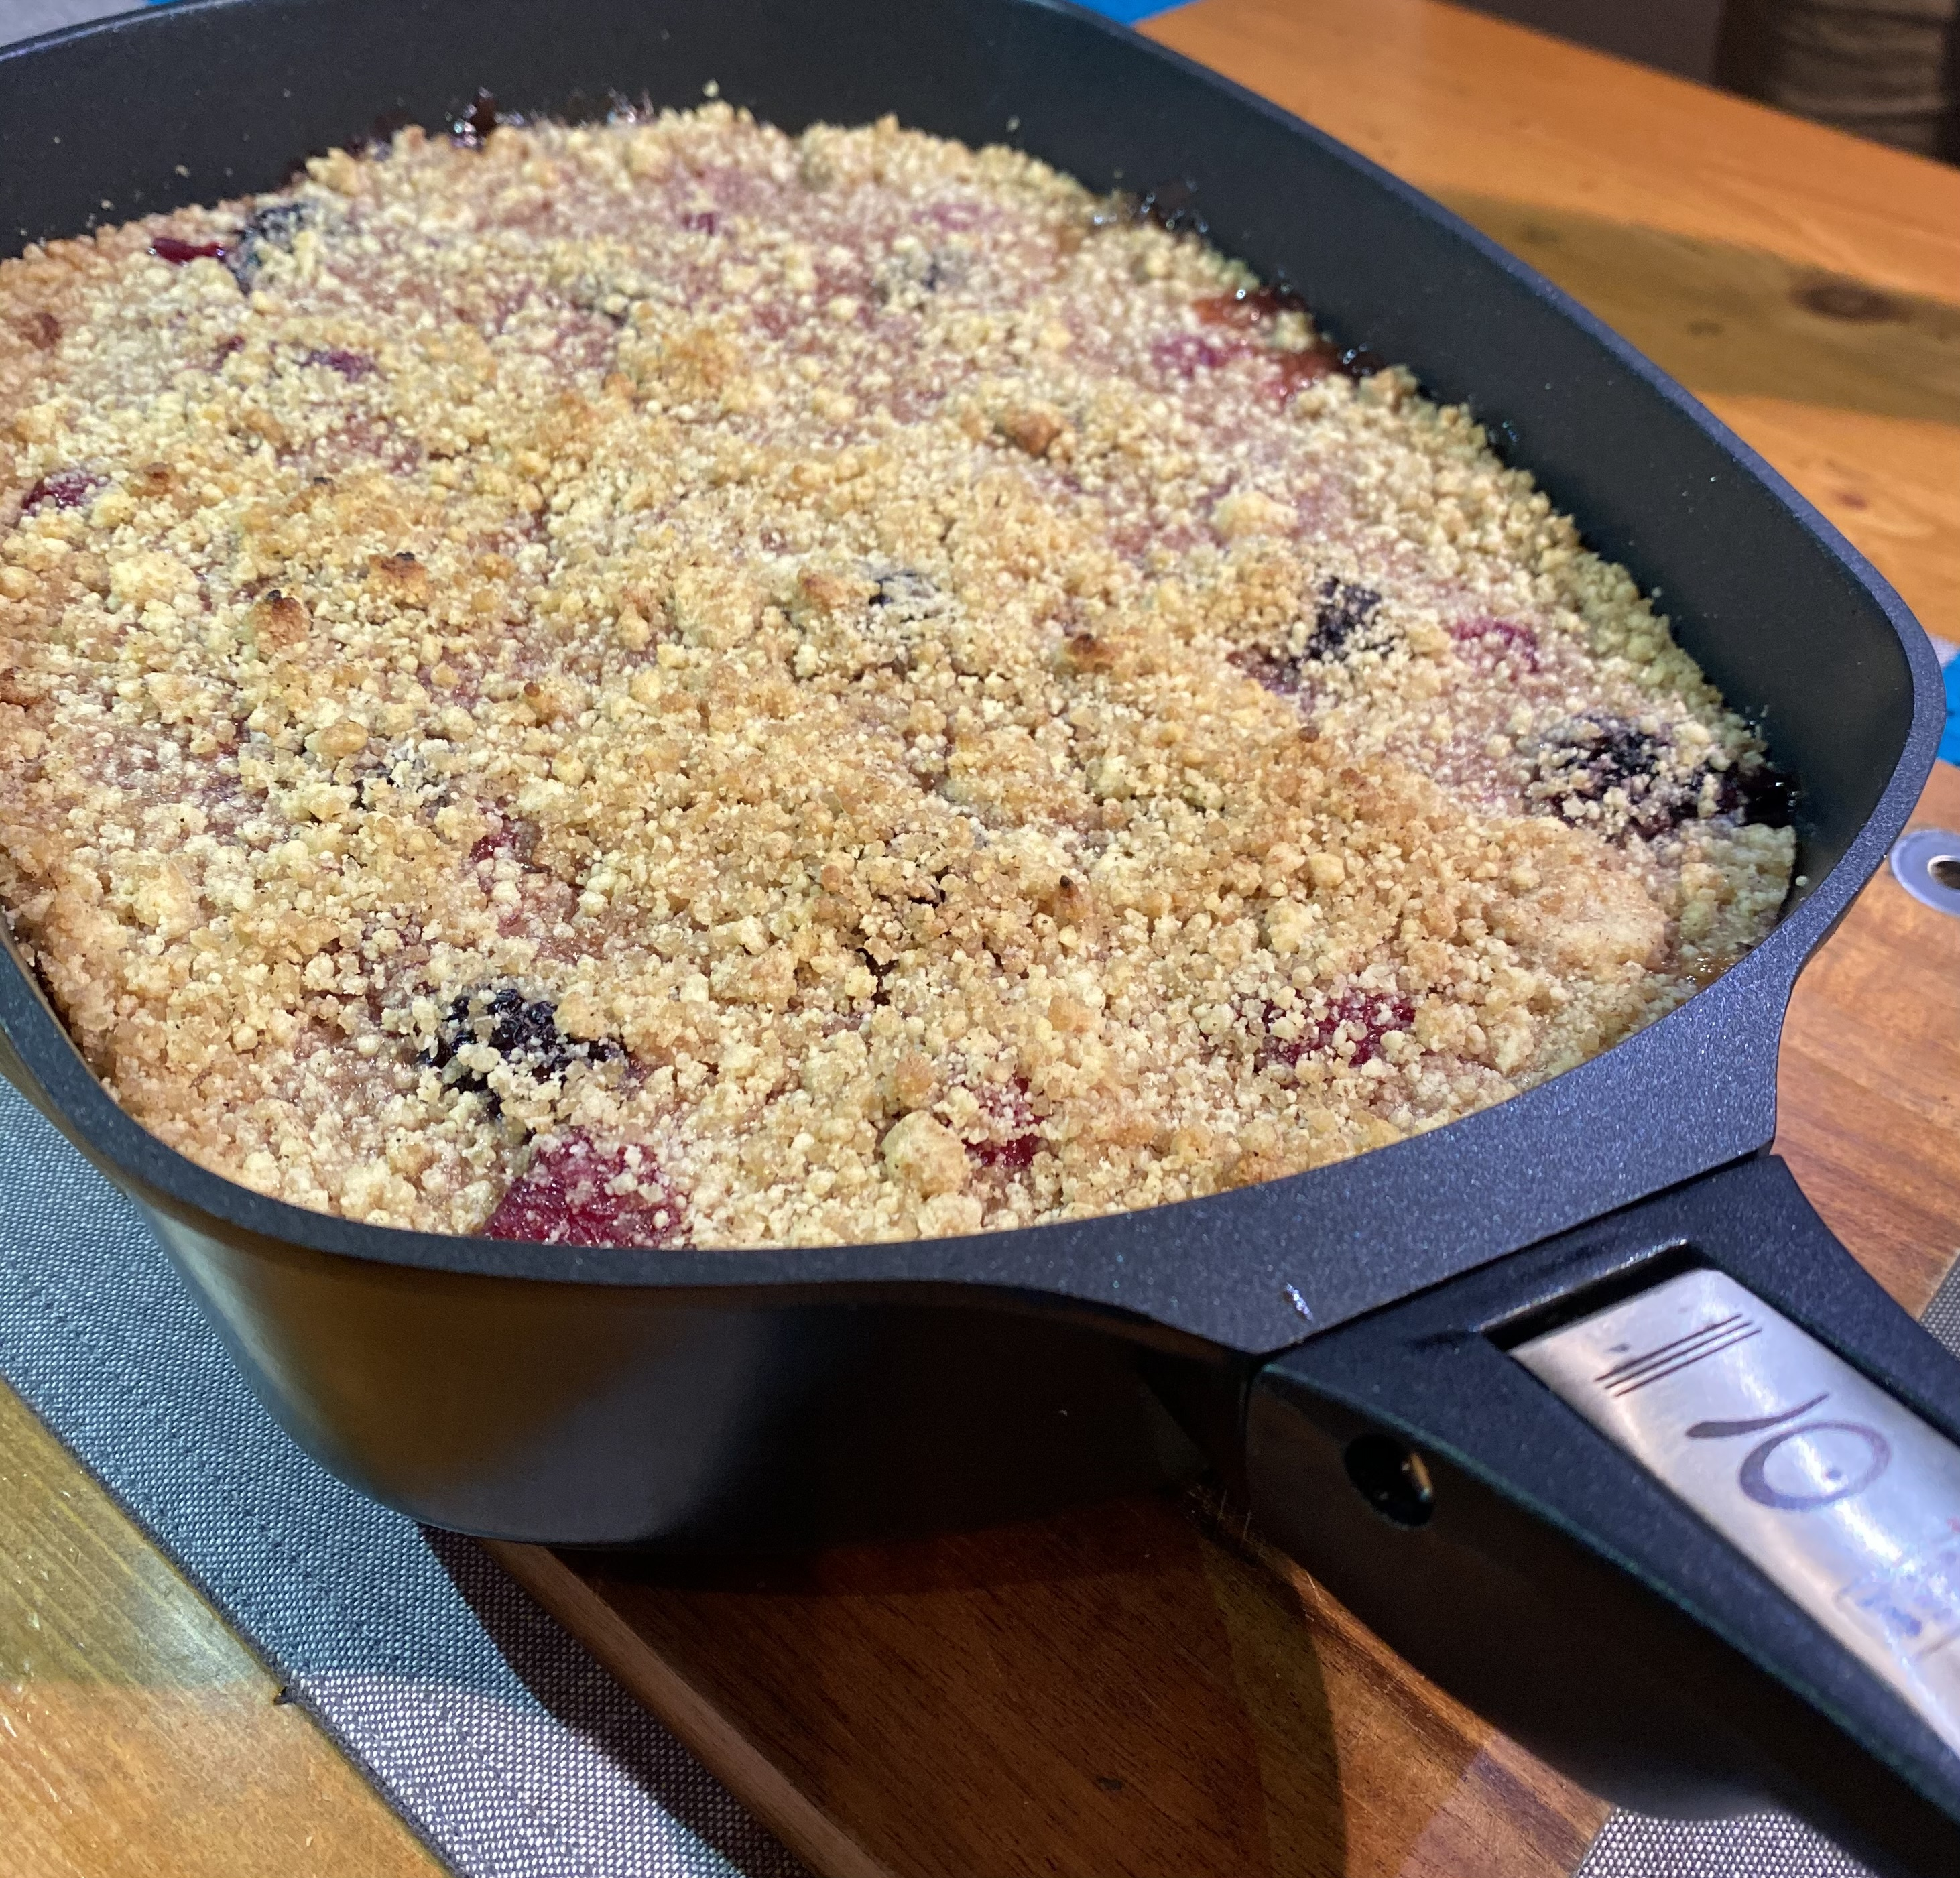 Article image for Geoff Maddern's recipe for apple and mixed berry crumble